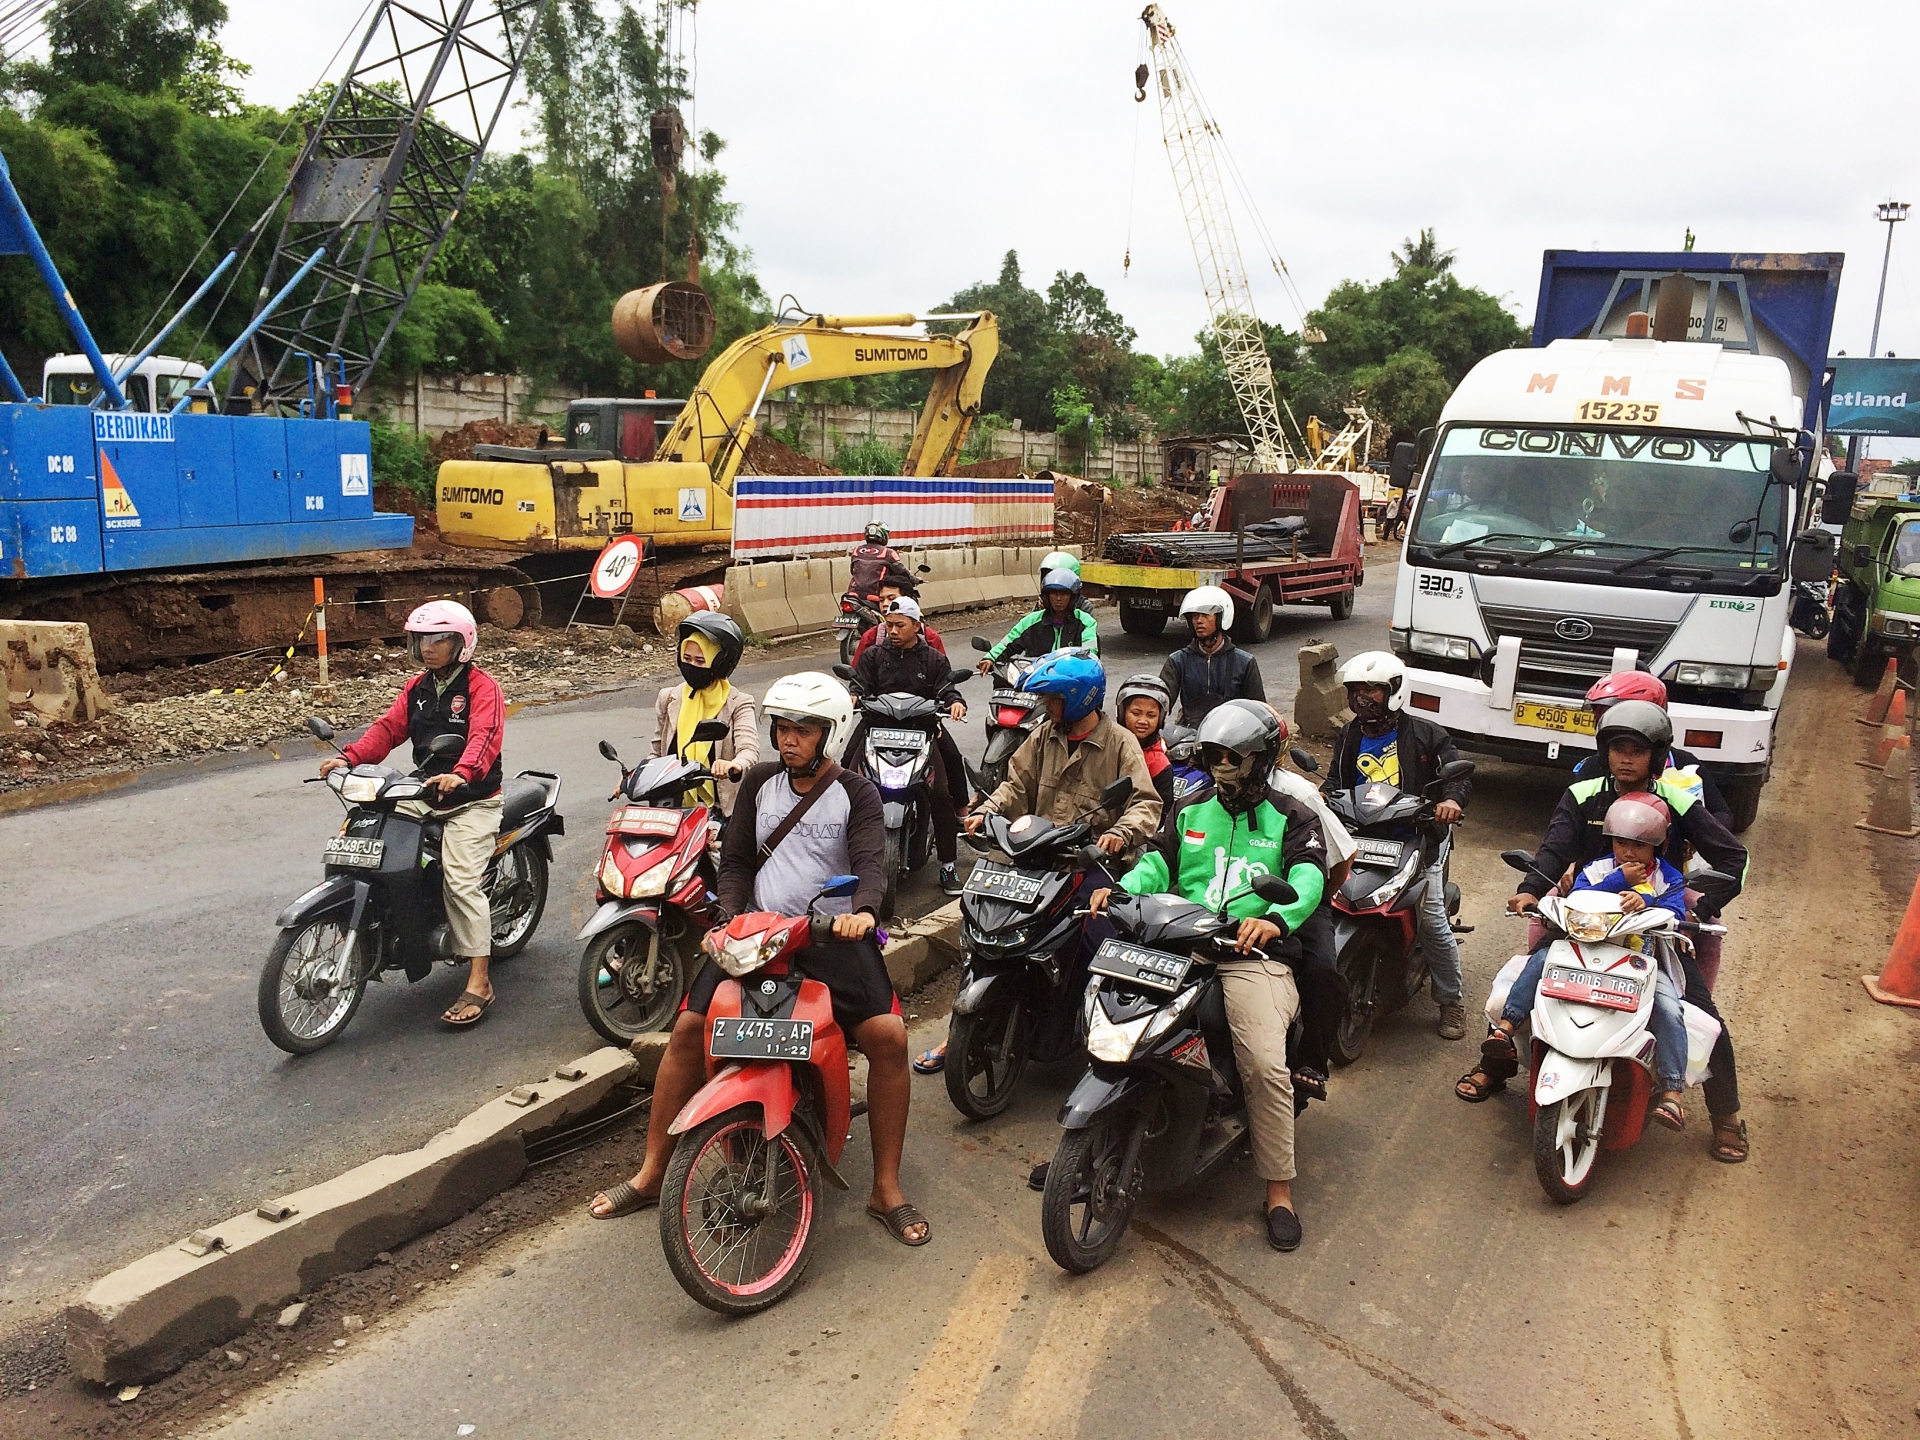 In the home city of Go-jek, Indonesia's start-up miracle